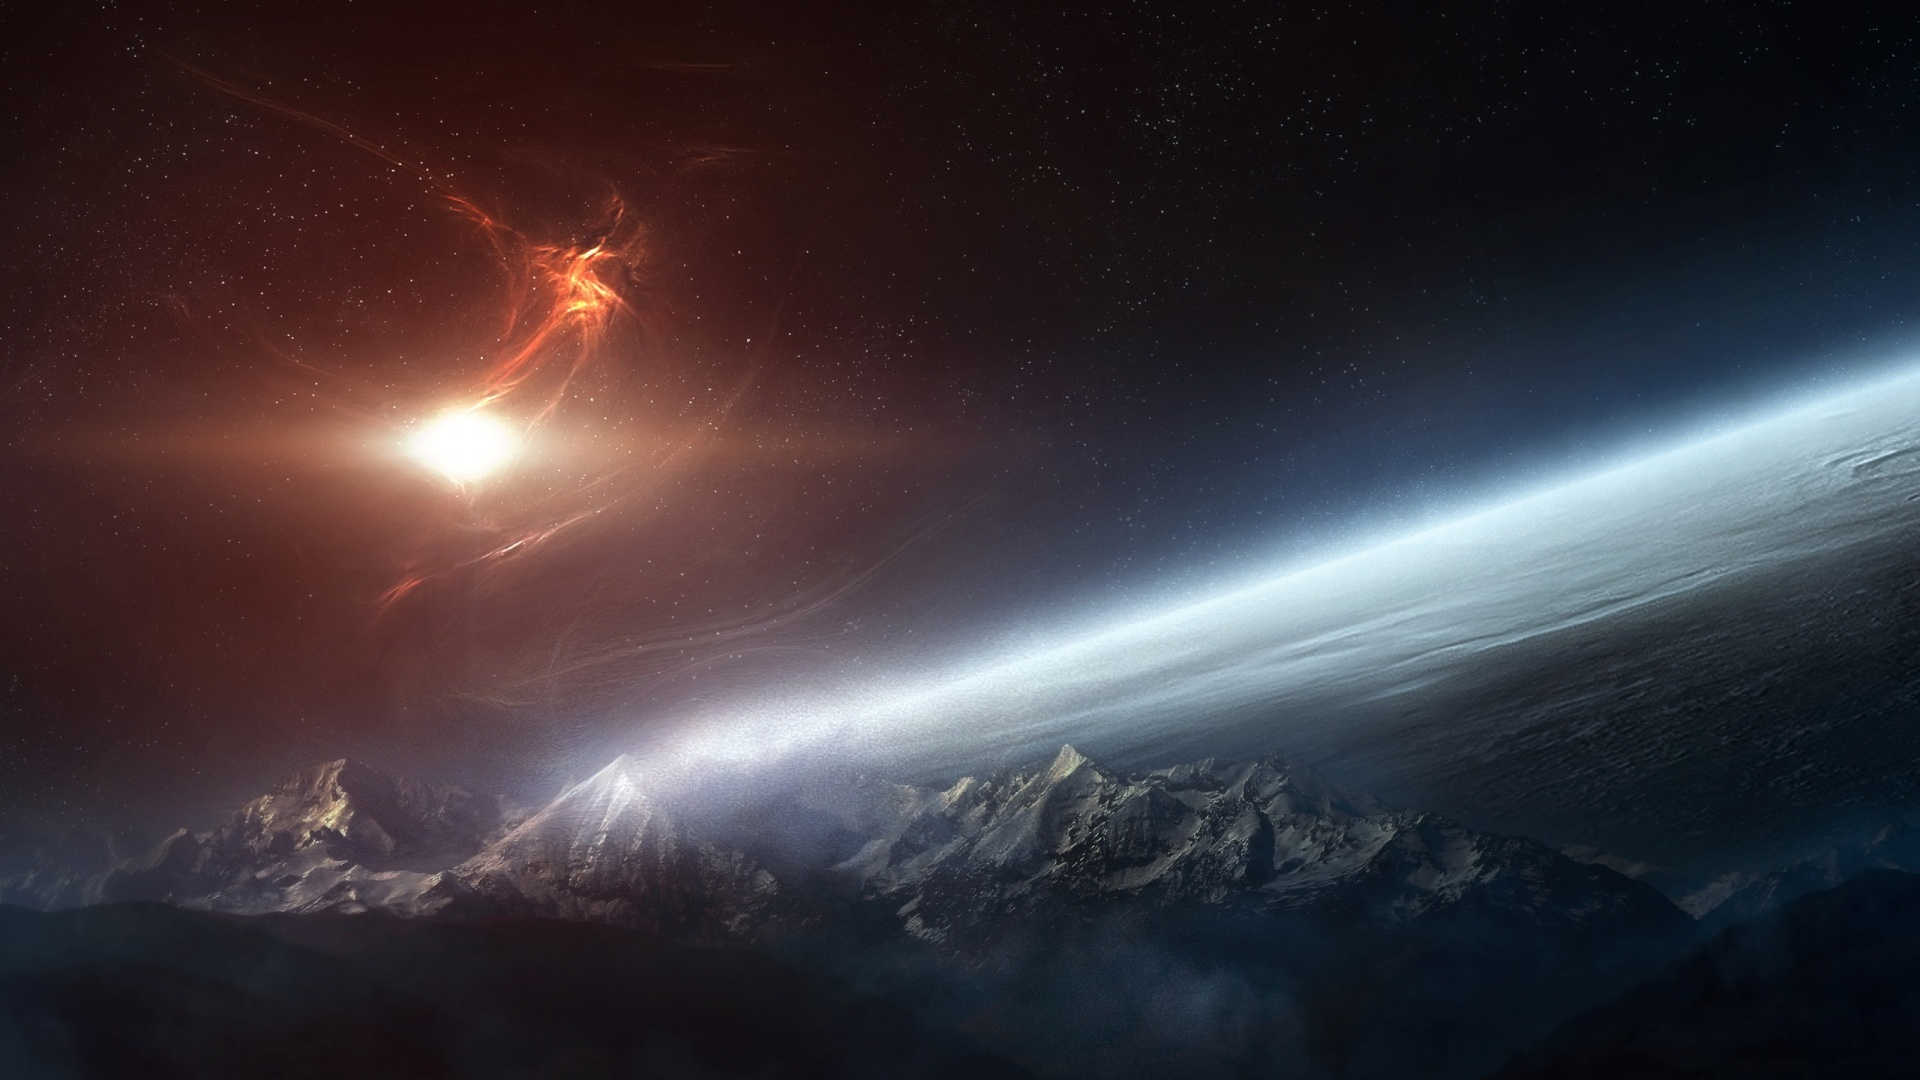 1920x1080 Space desktop PC and Mac wallpaper 1920x1080